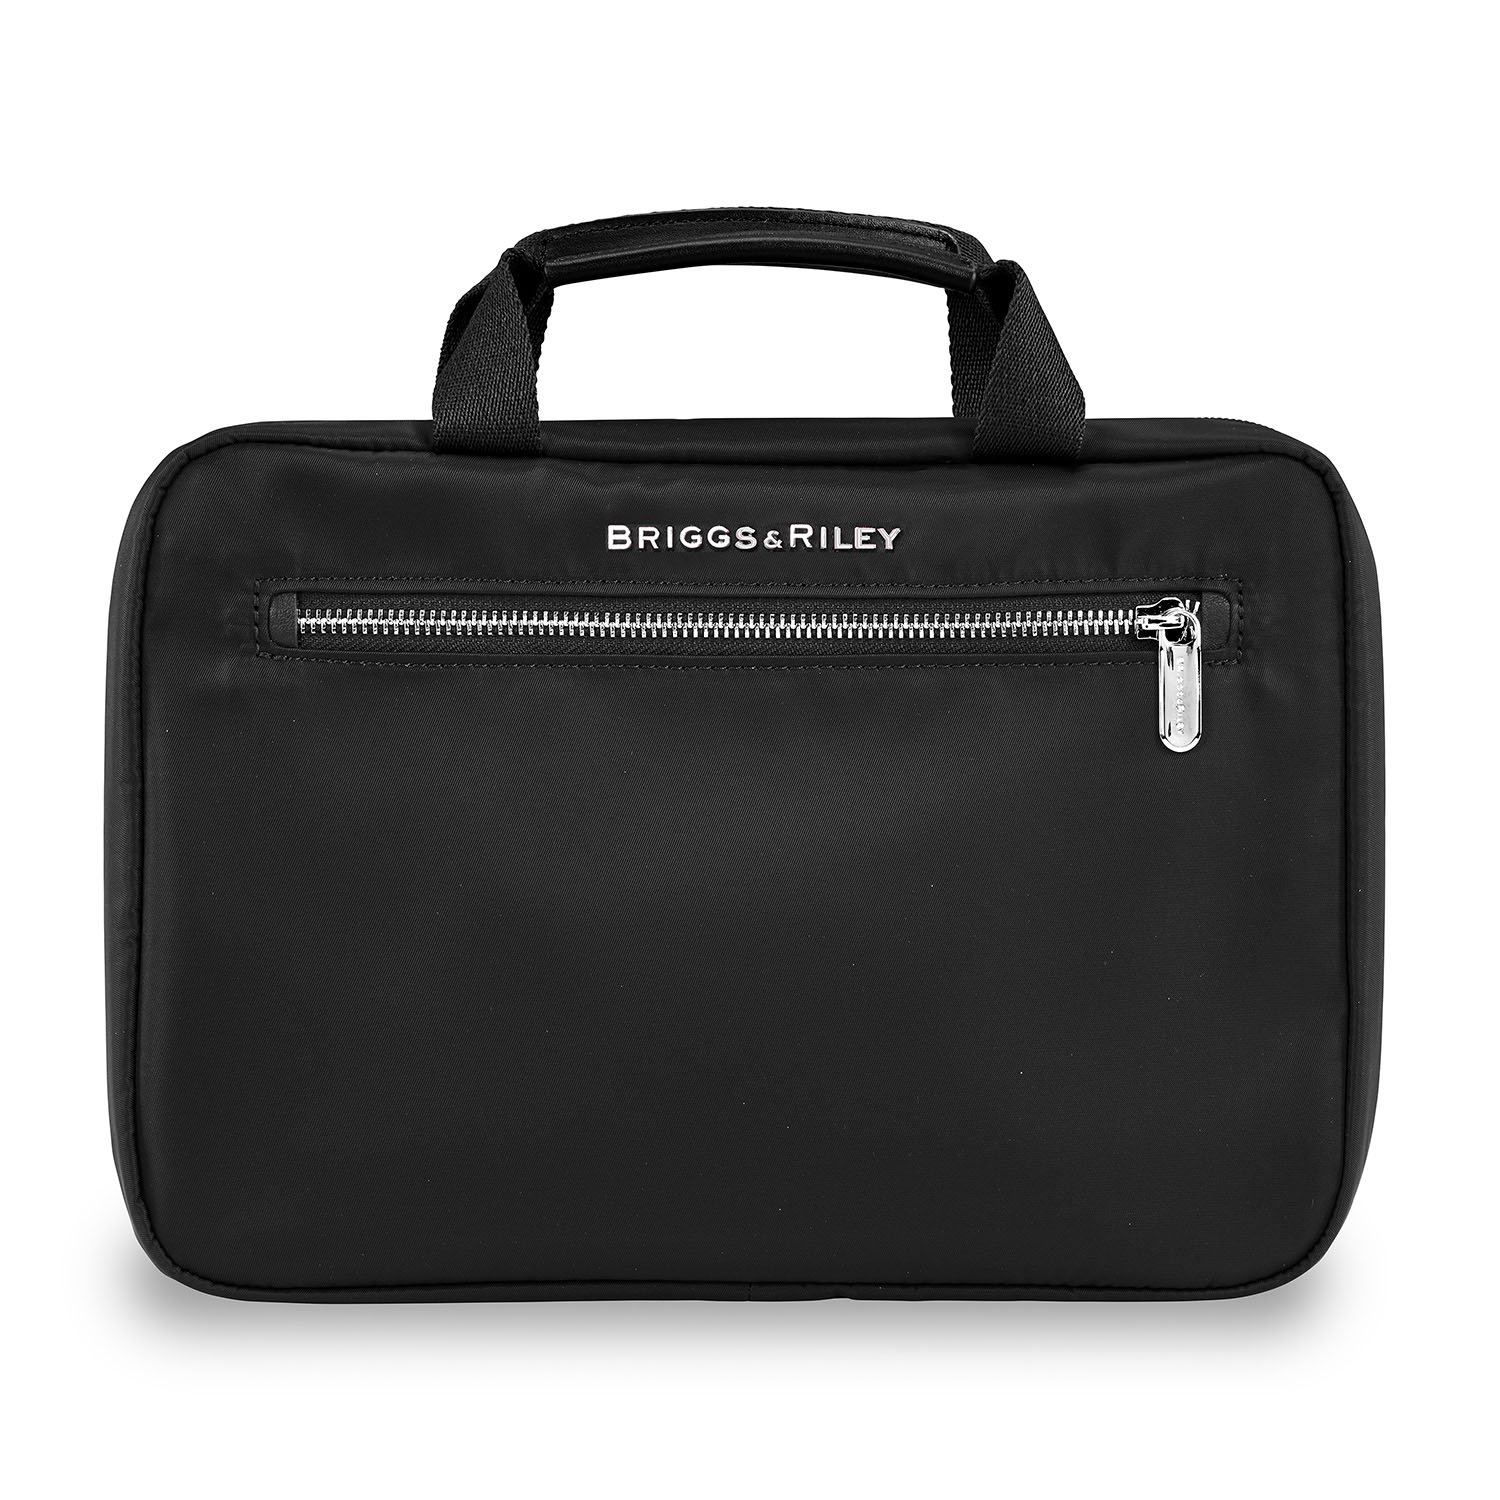 Rhapsody Hanging Toiletry Kit by Briggs & Riley (Color: Black)